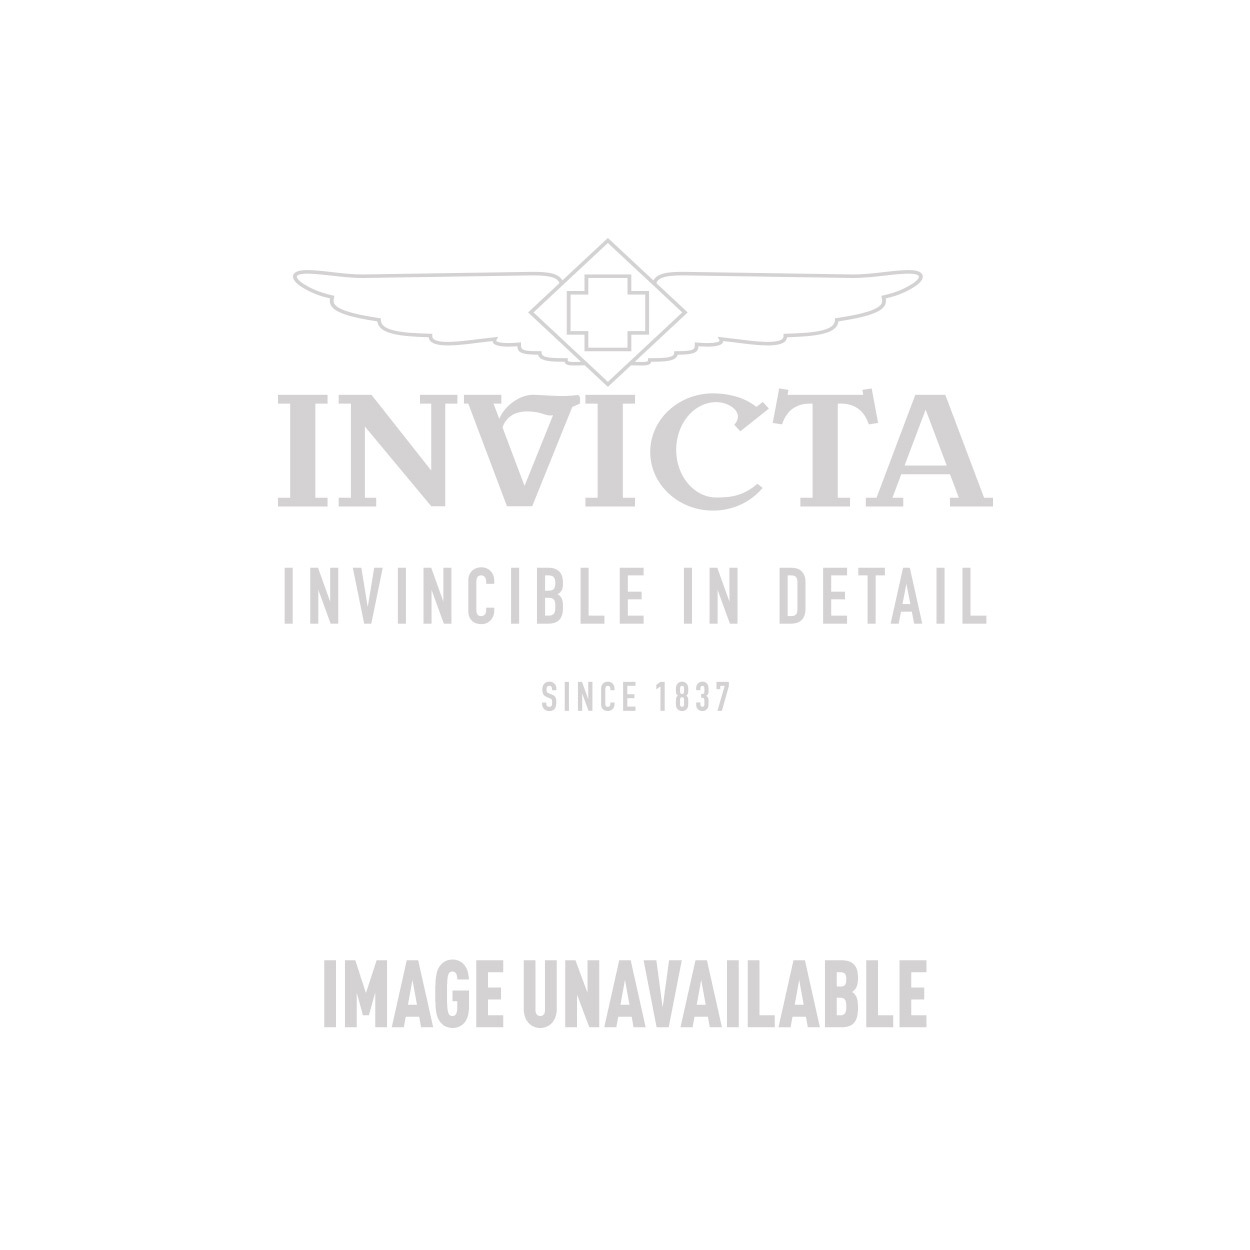 Invicta 21cm Men's Bracelets in White, Brown - Model J0097